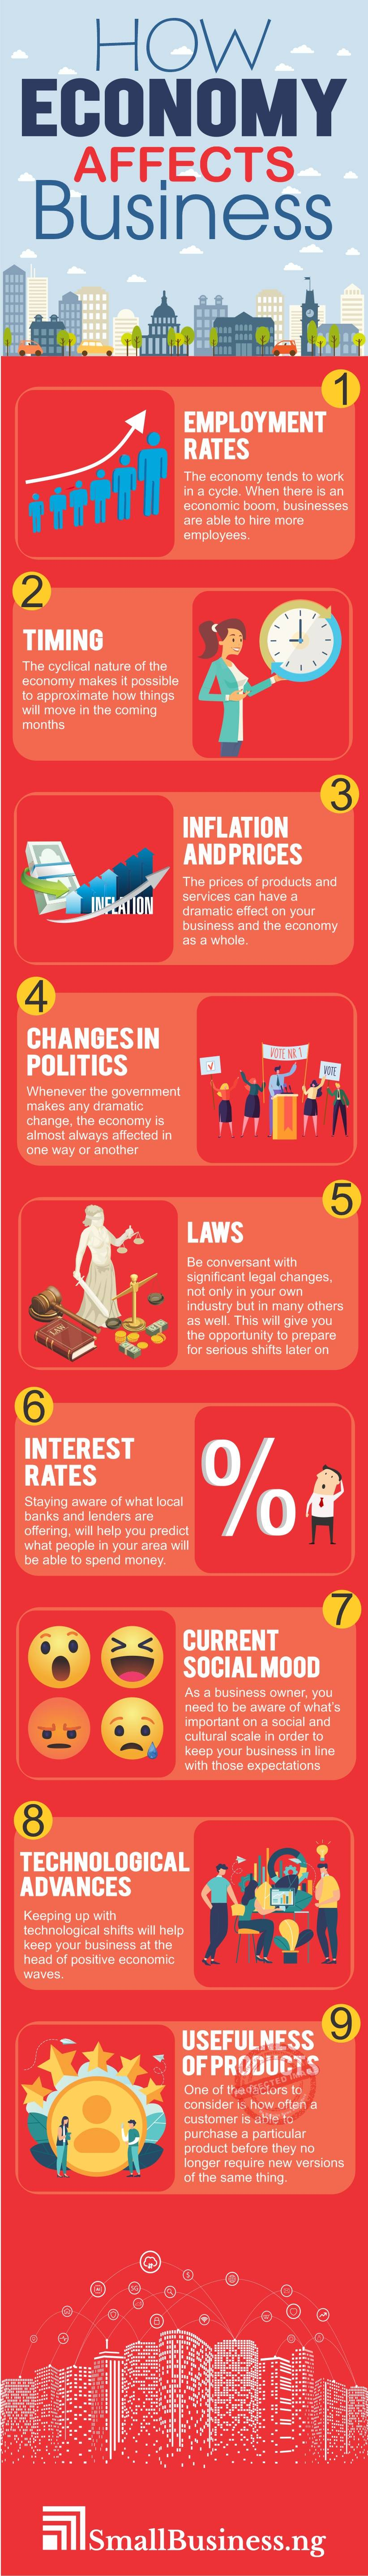 How Economy Affects Business Infographic